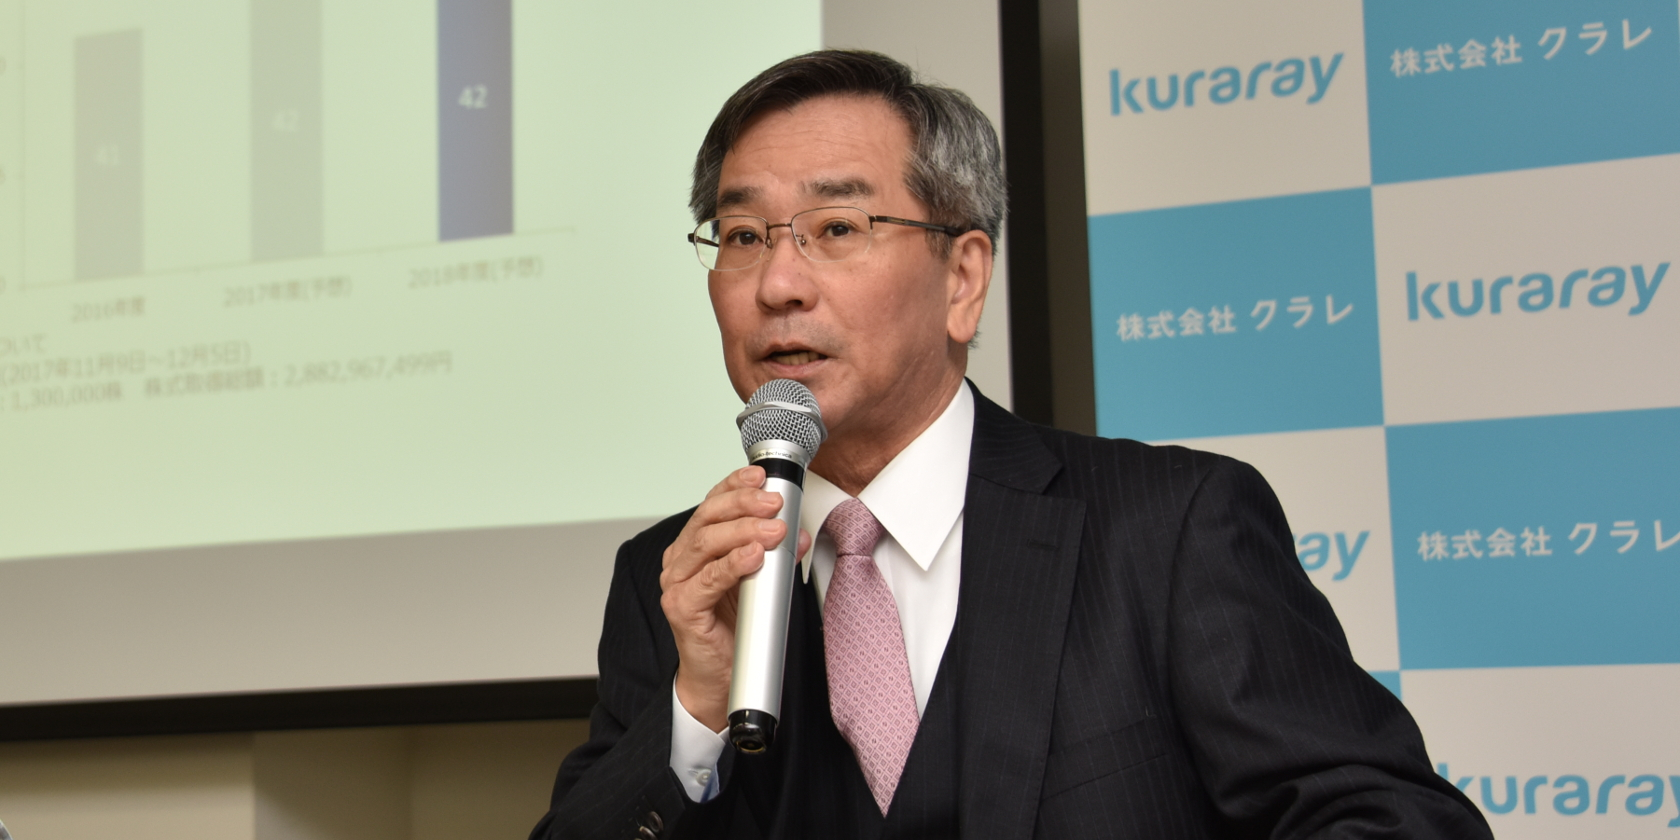 Kuraray Outlines 2020 Financial Targets in New Medium-Term Plan